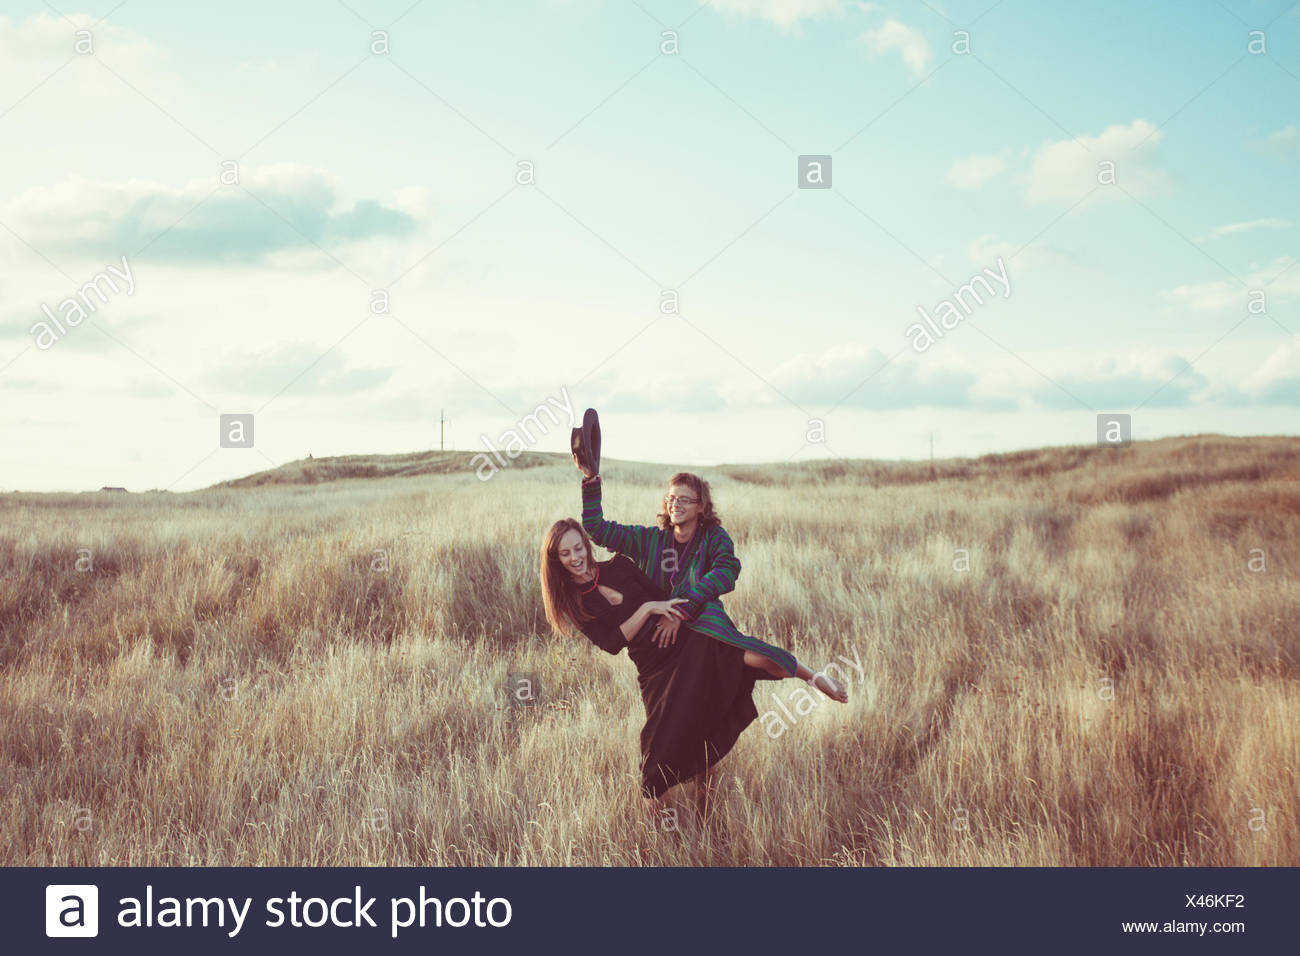 Couple messing about in field - Stock Image